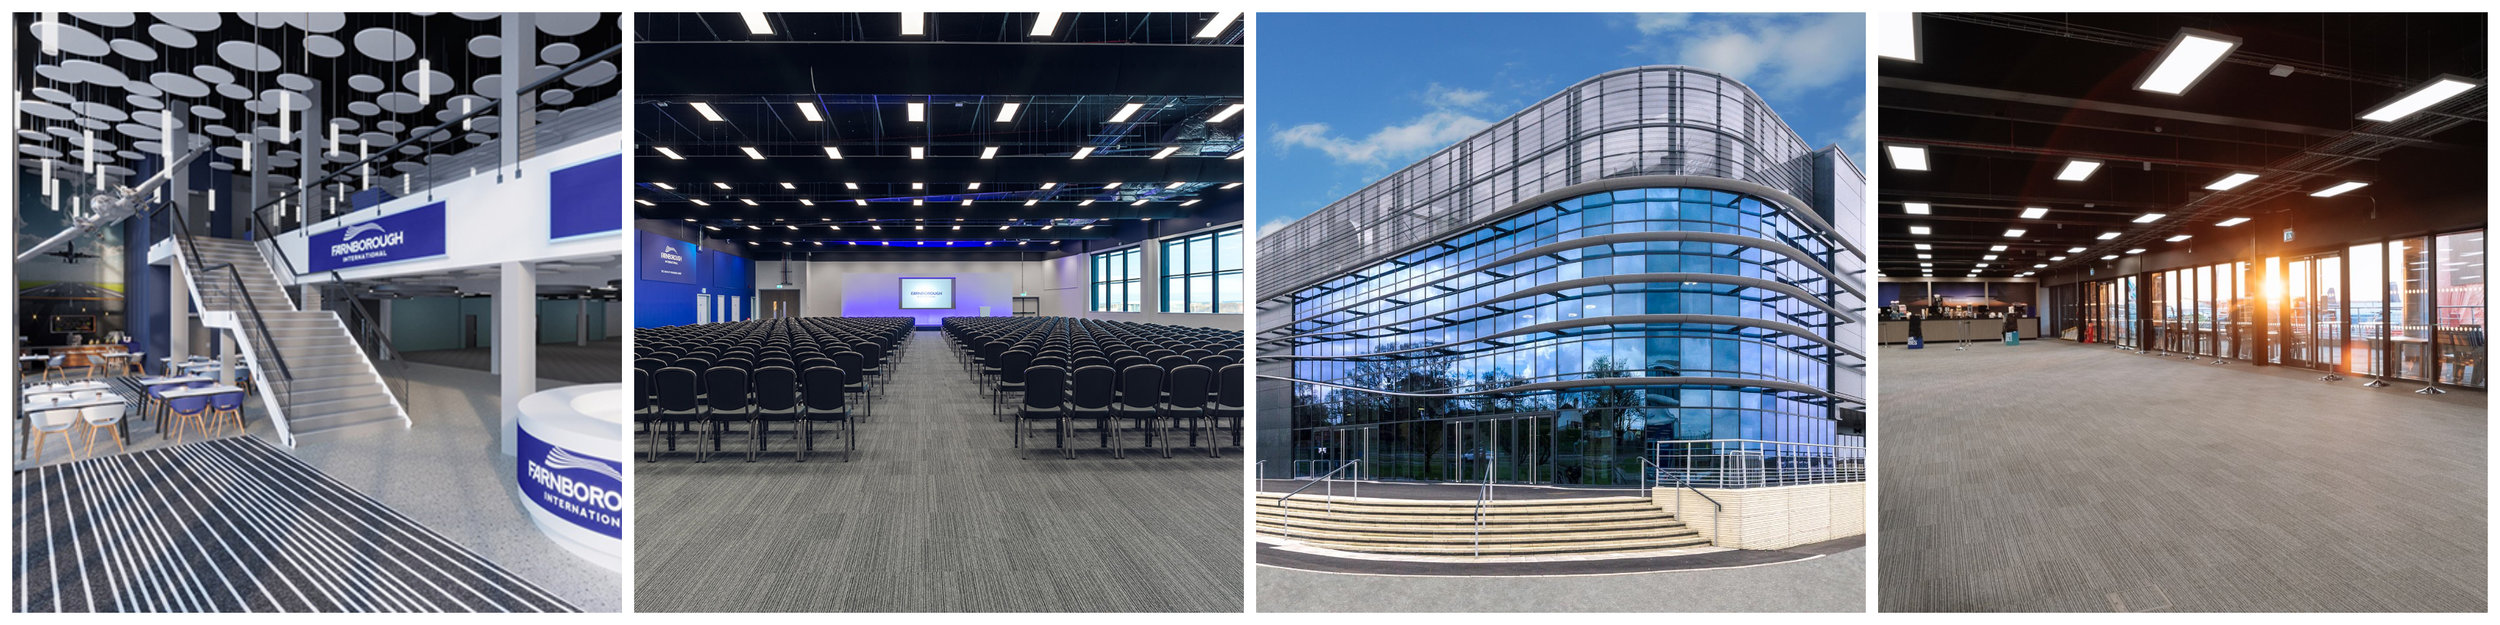 Farnborough conference centre EDGE